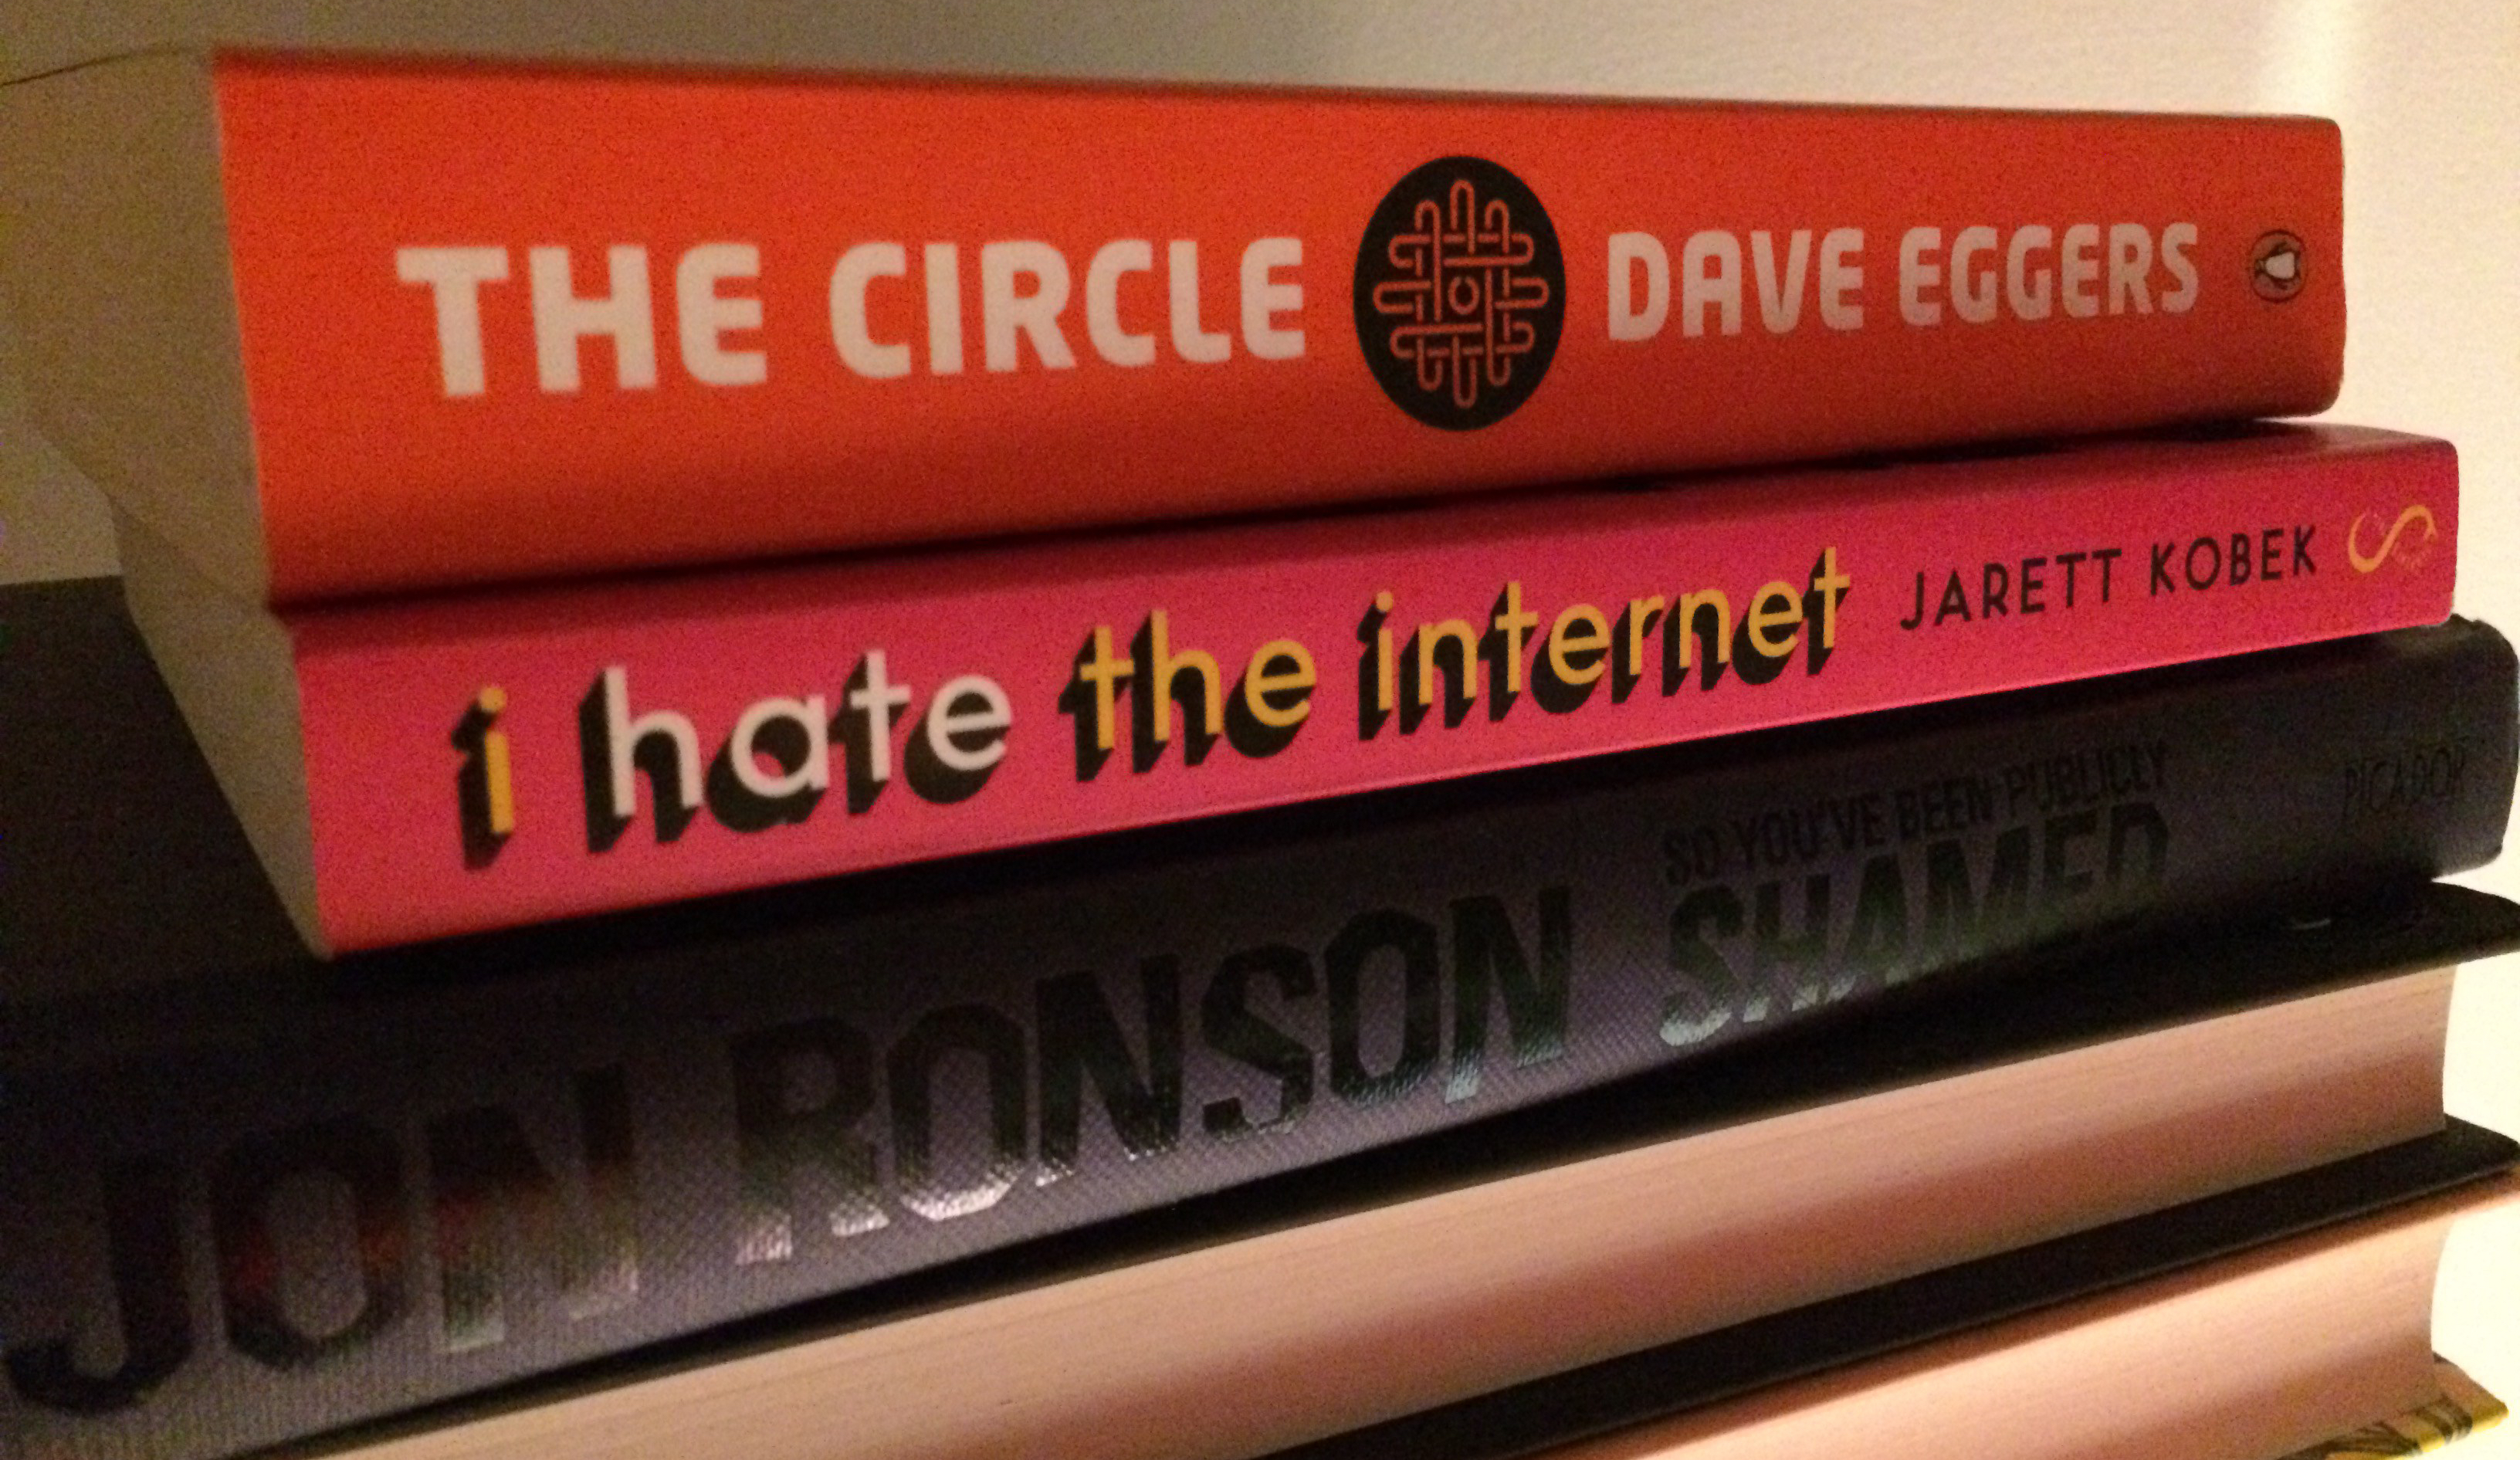 I hate the internet, So You've Been Publicly Shamed, The Circle